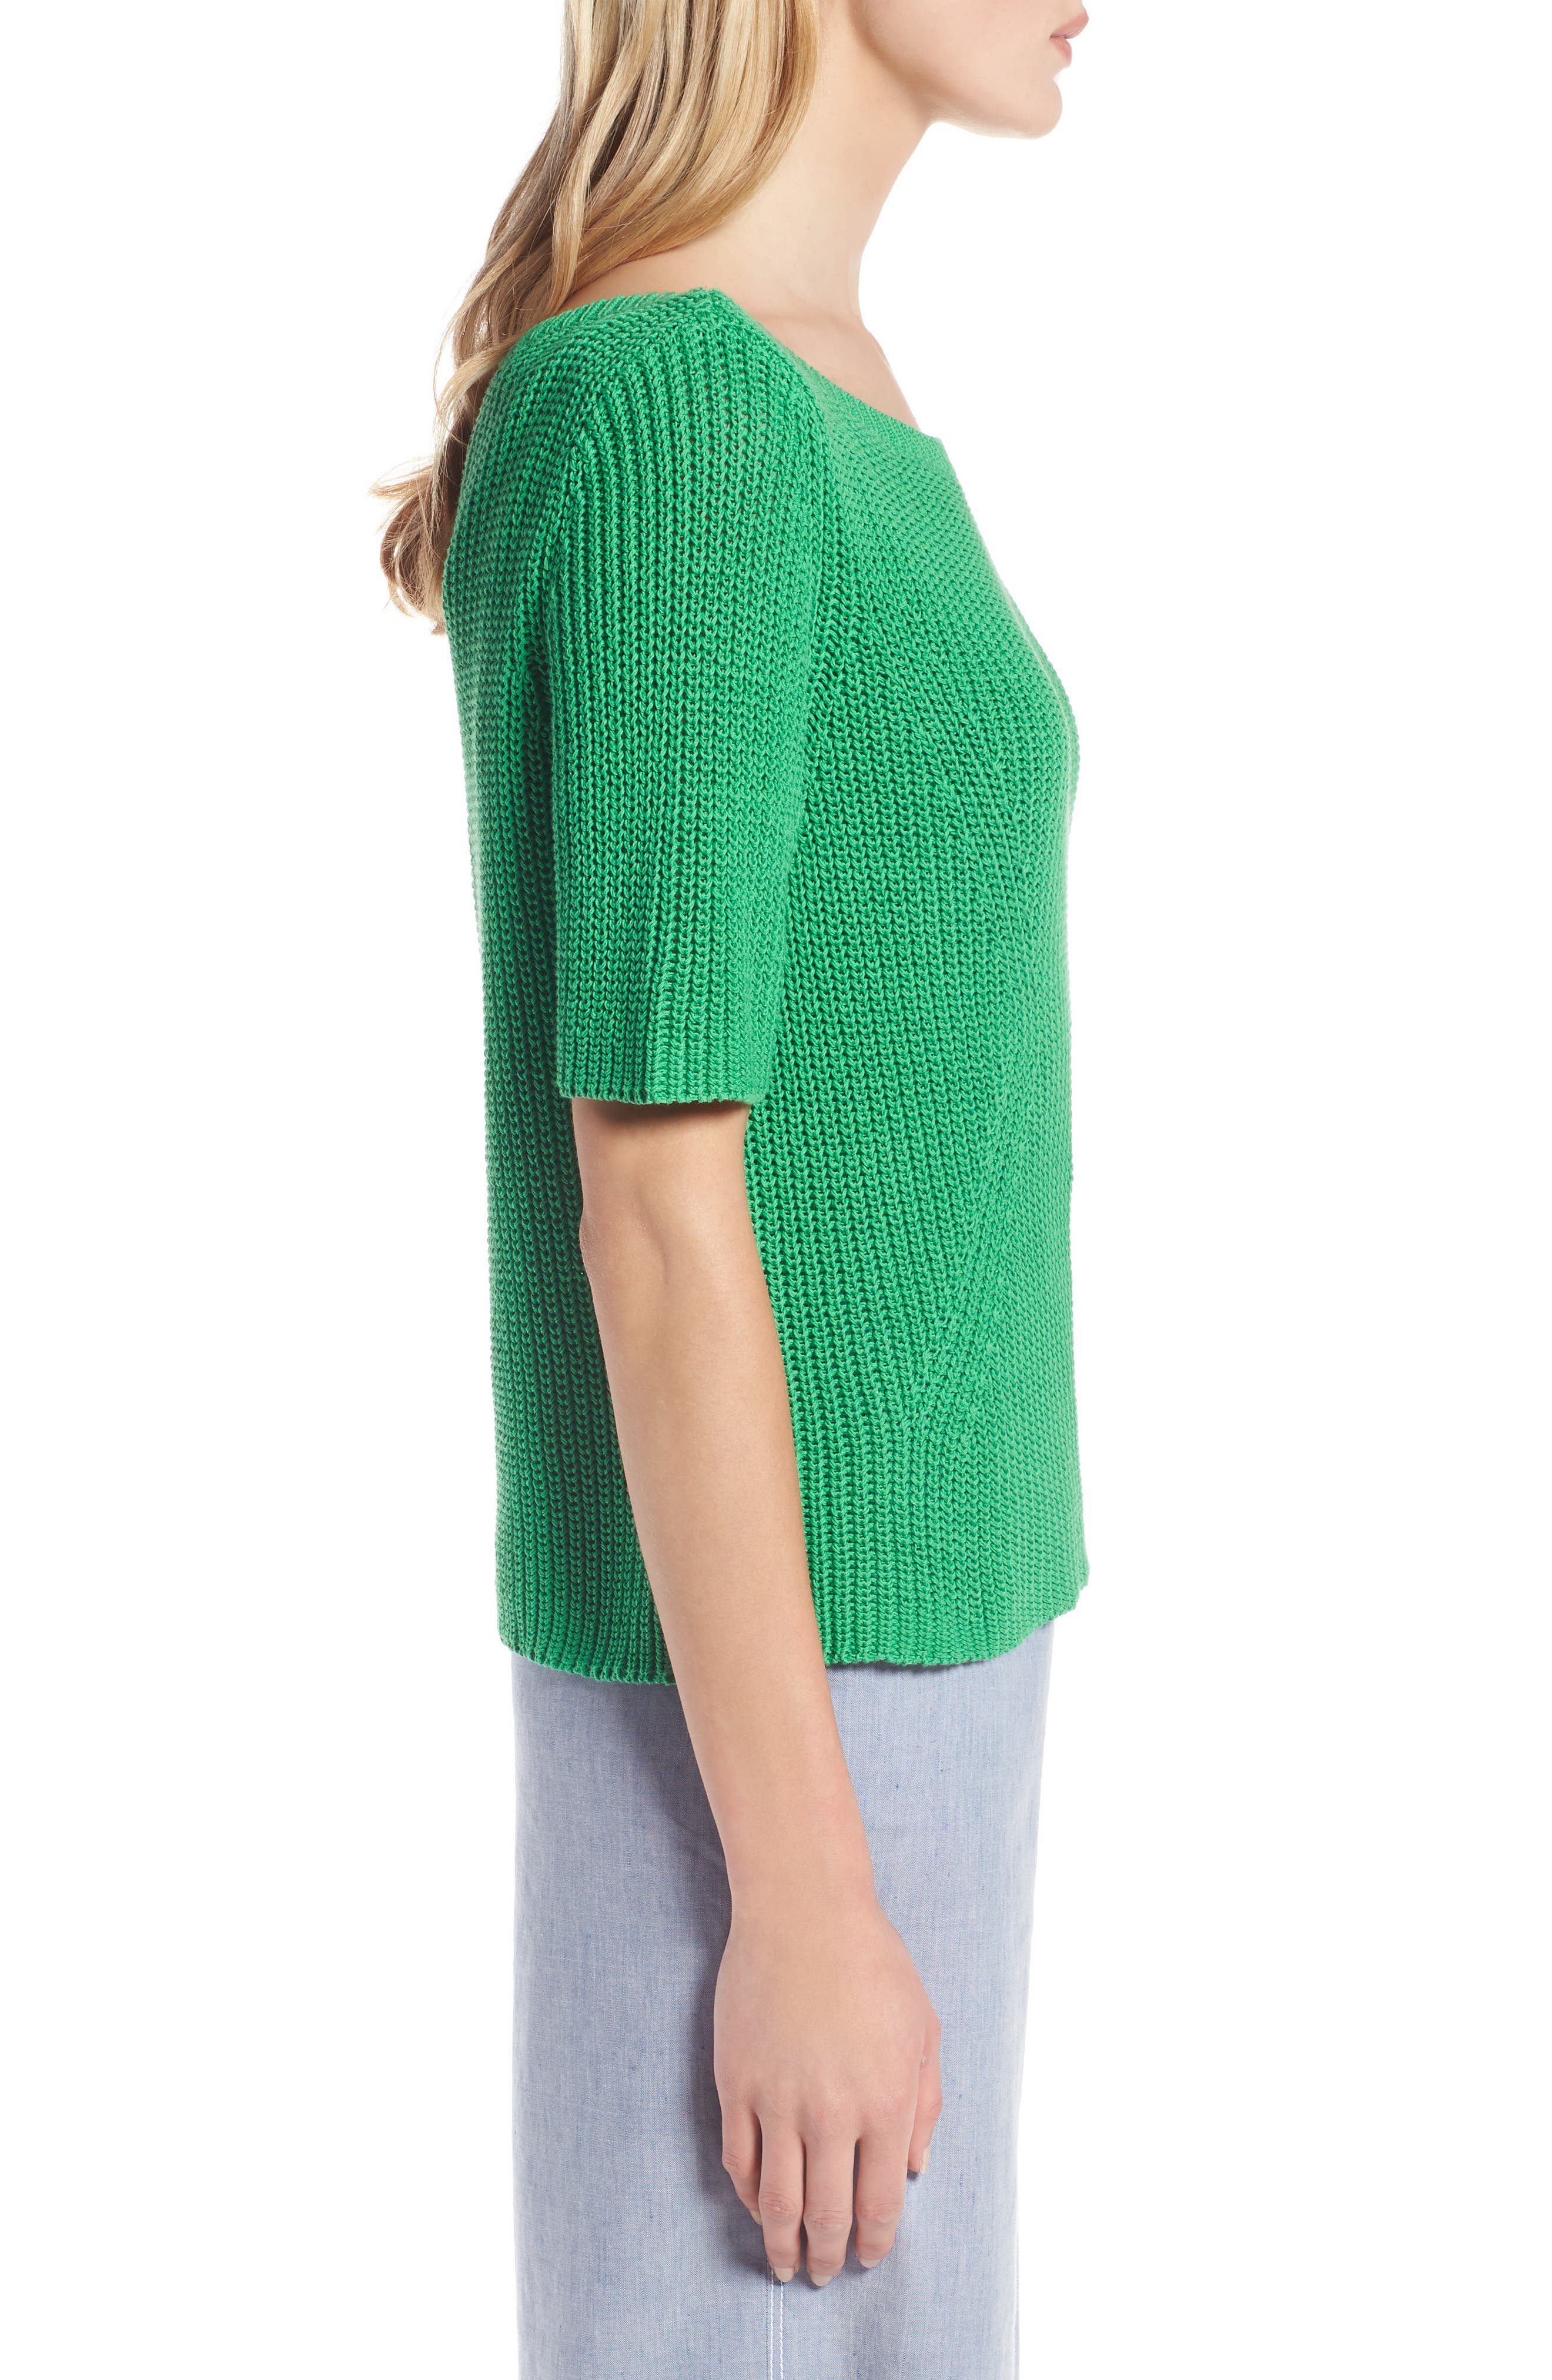 Shaker Stitch Cotton Sweater,                             Alternate thumbnail 3, color,                             330